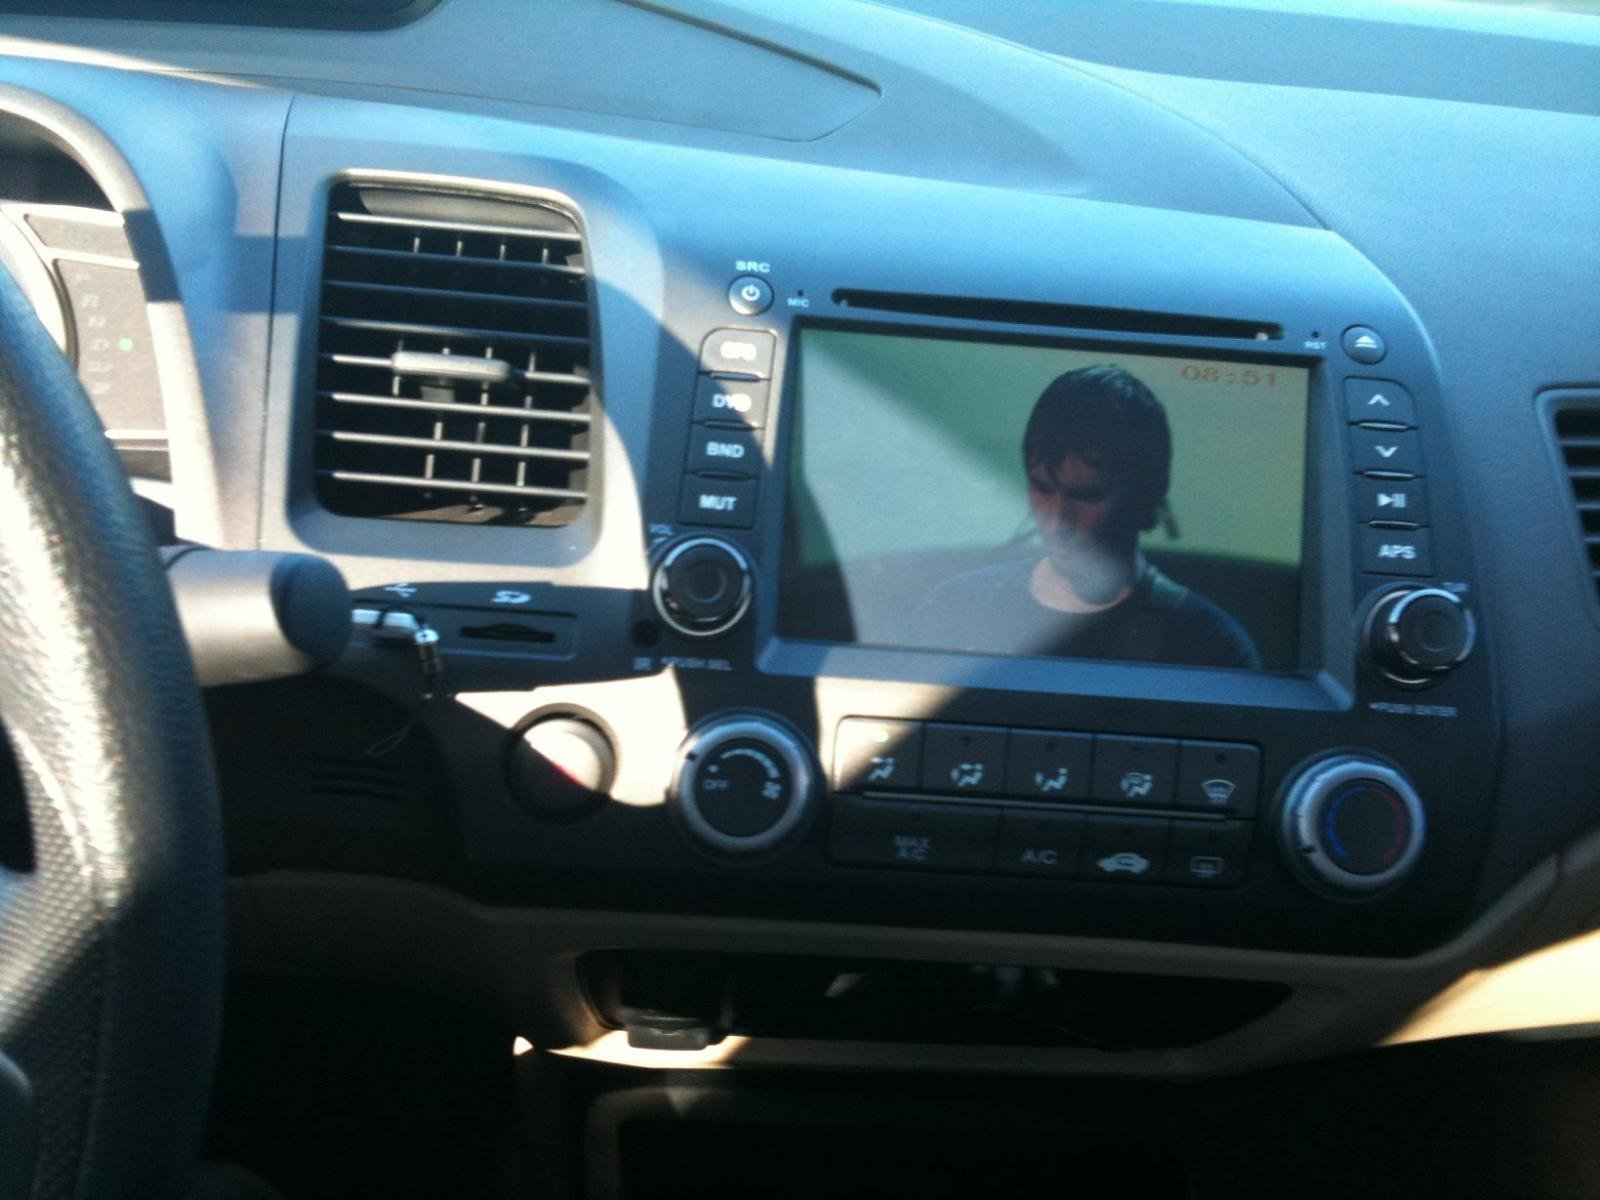 DIY: Aftermarket radio Install in an EX - Page 16 - 8th Generation ...